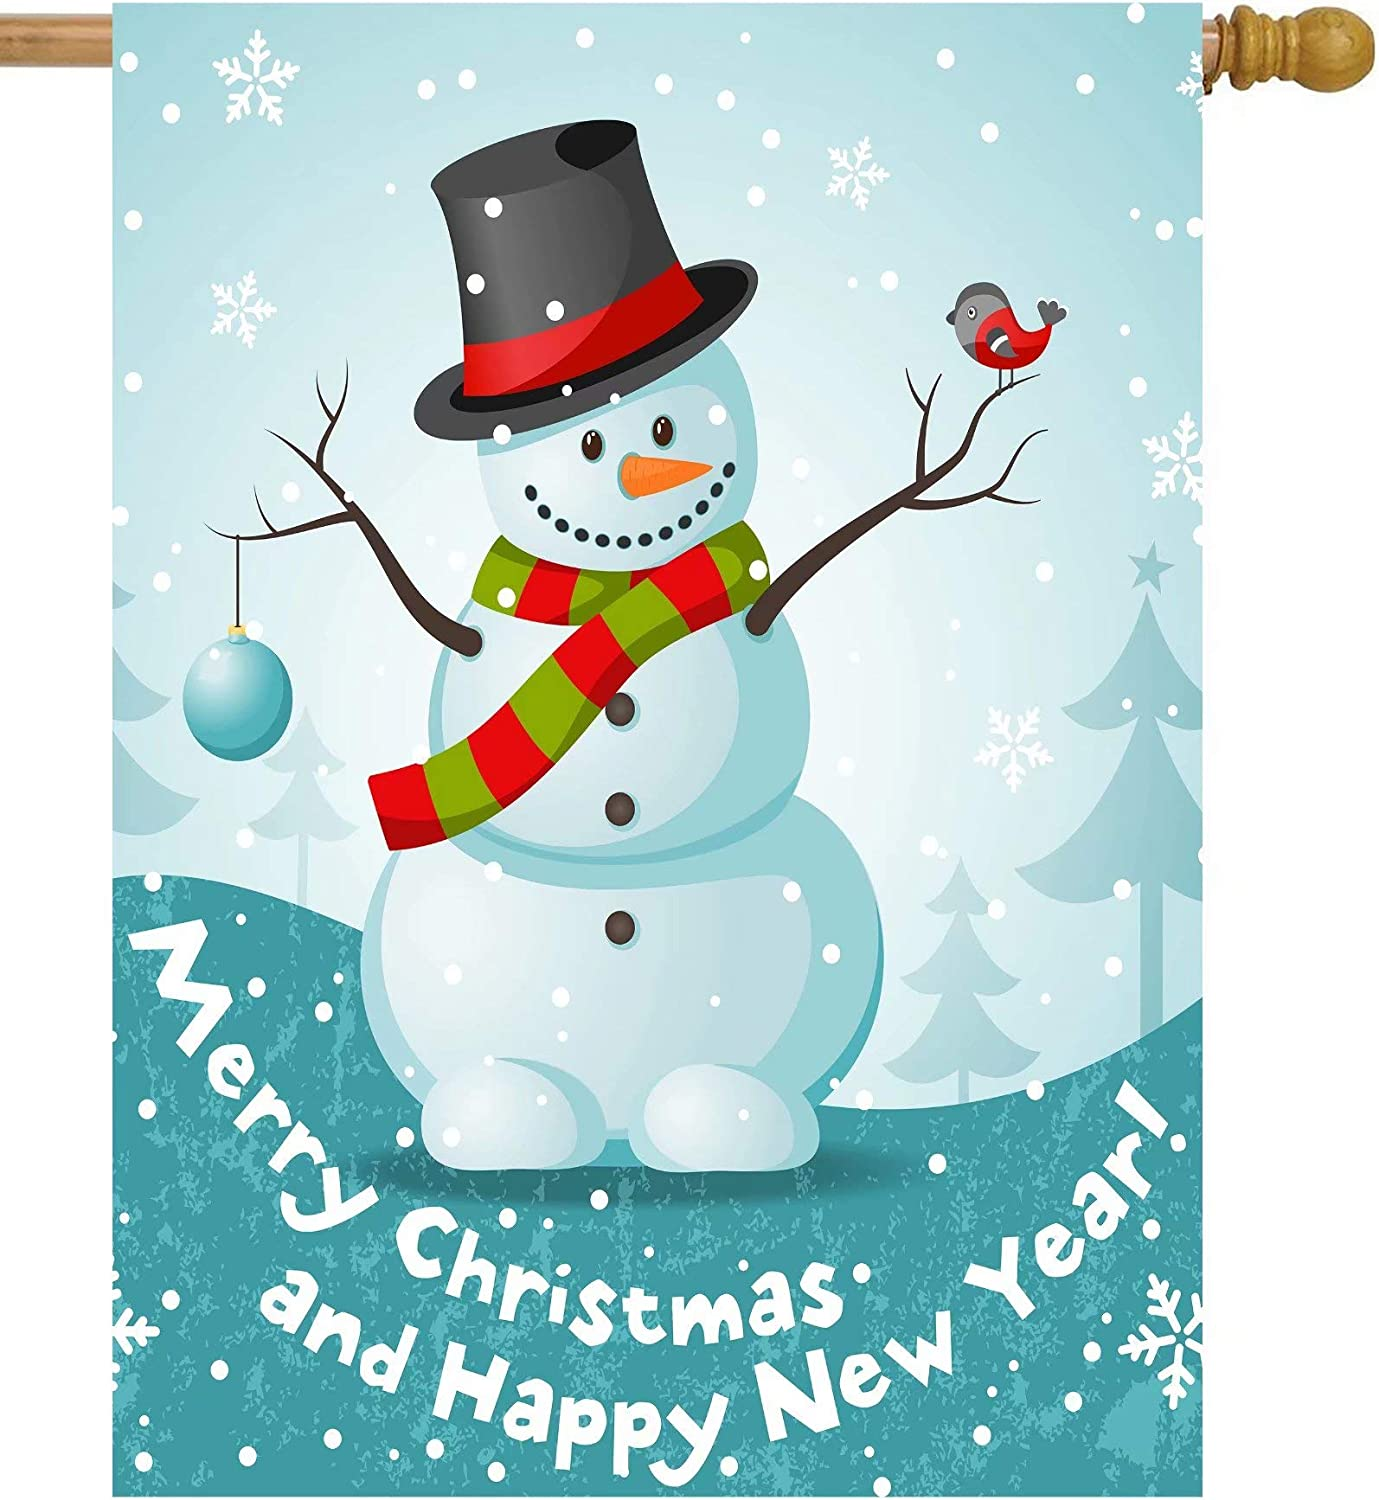 Shinesnow Snowman Merry Christmas Happy New Year Garden Yard Flag 12 X 18 Double Sided Polyester Cute Bird Winter Snowflake Welcome House Flag Banners For Patio Lawn Outdoor Home Decor